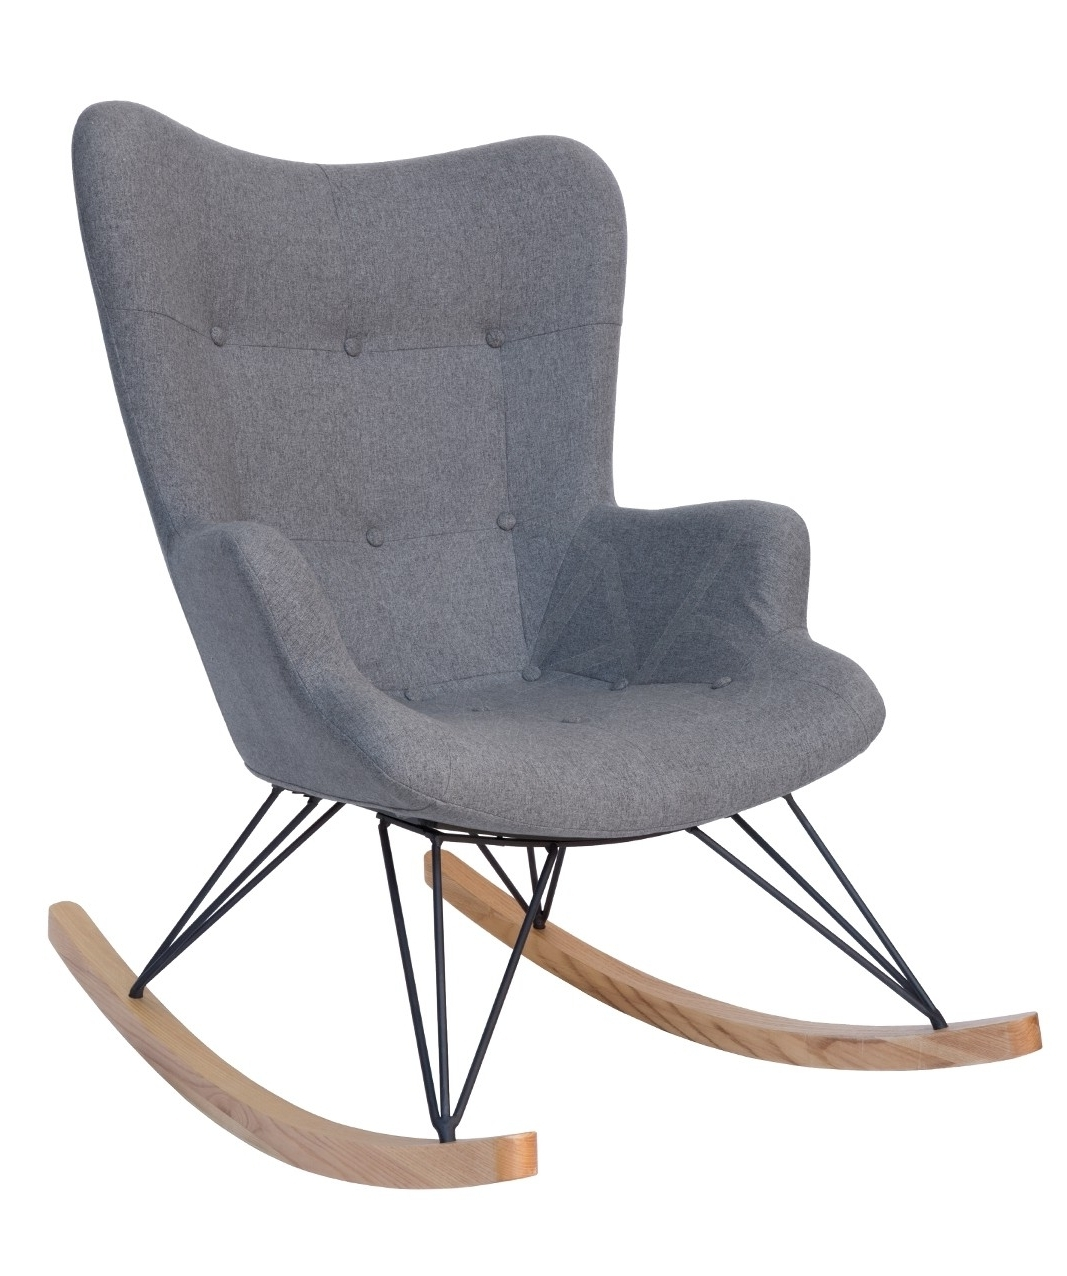 Rocking Chairs Adelaide Inside 2018 Replica Grant Featherston Rocking Chair Grey Adelaide Dining Chairs (View 3 of 15)